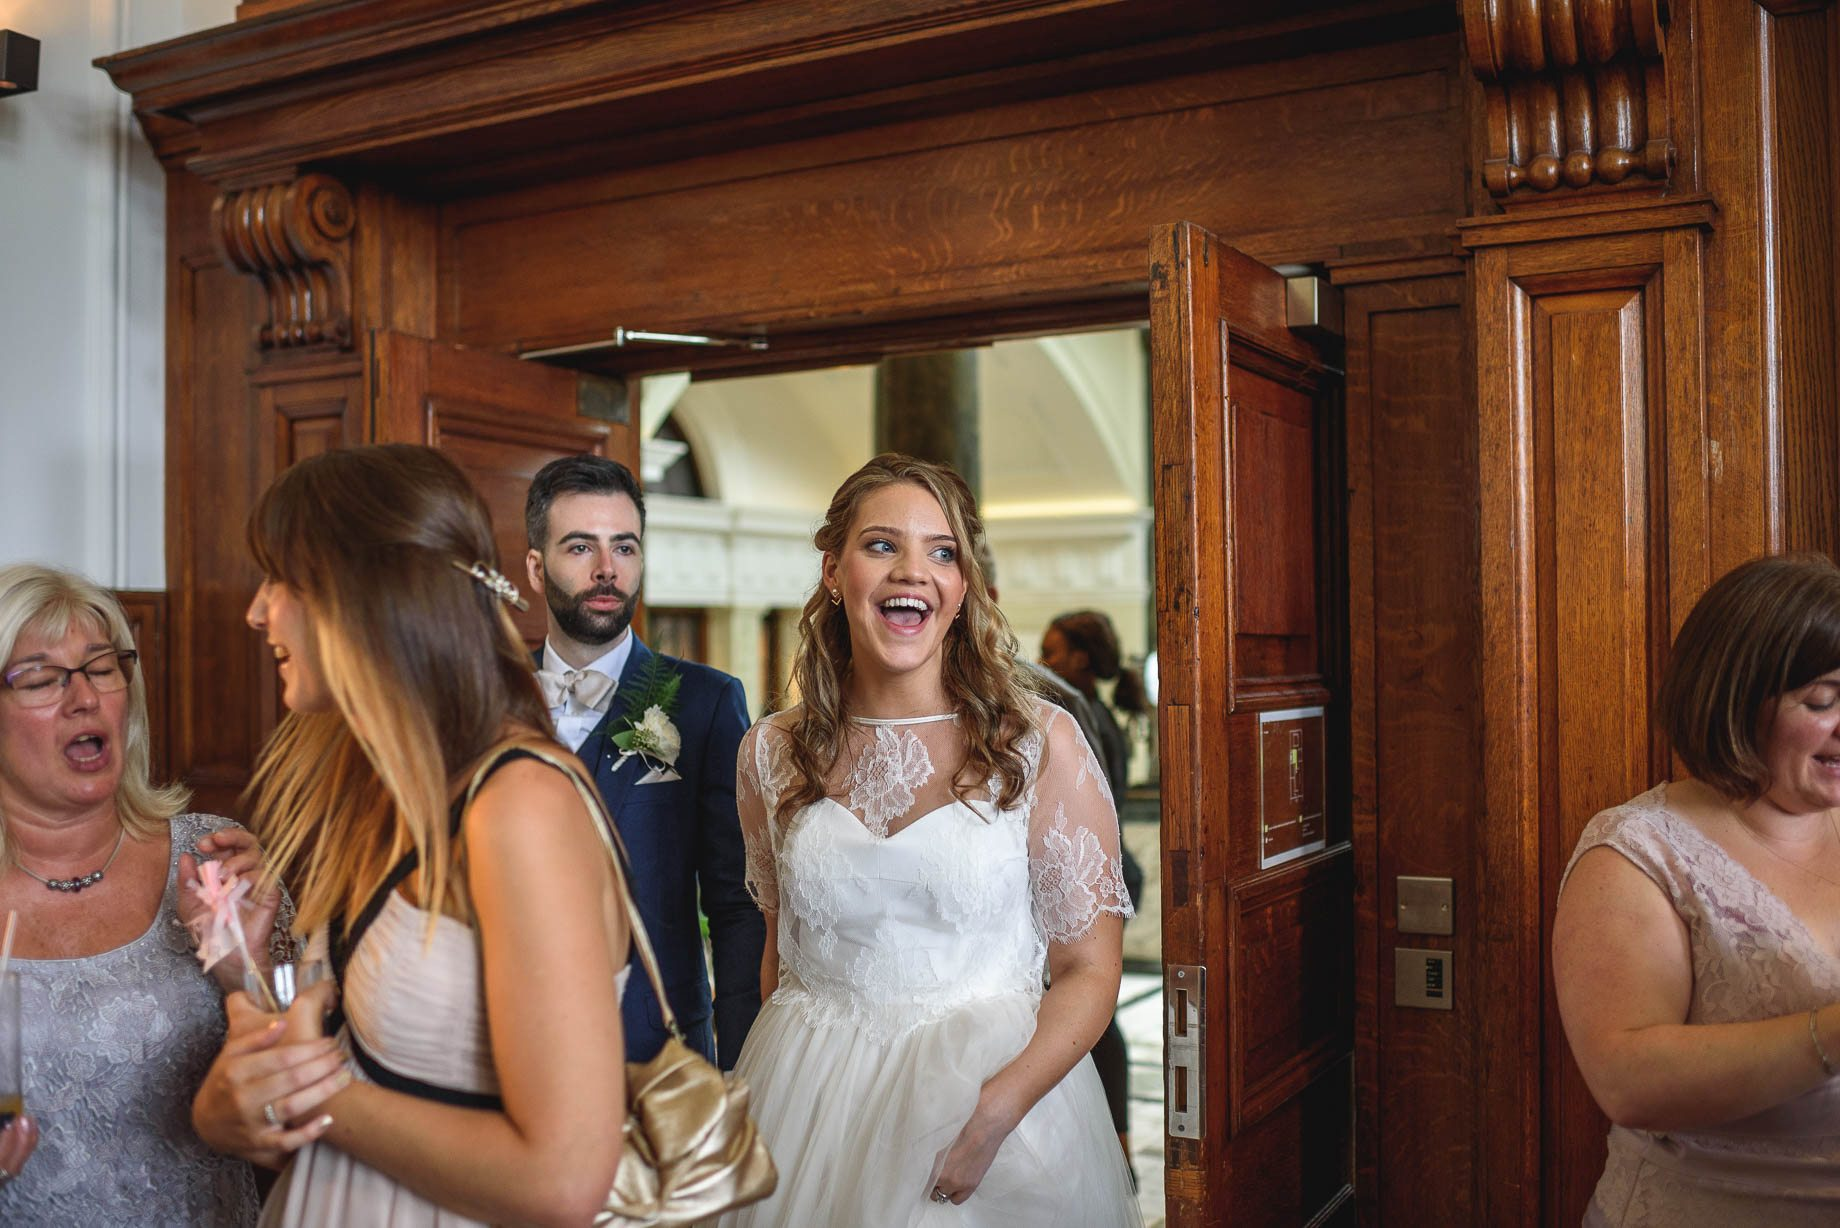 London Wedding Photography - Guy Collier Photography - LJ + Russell (78 of 155)